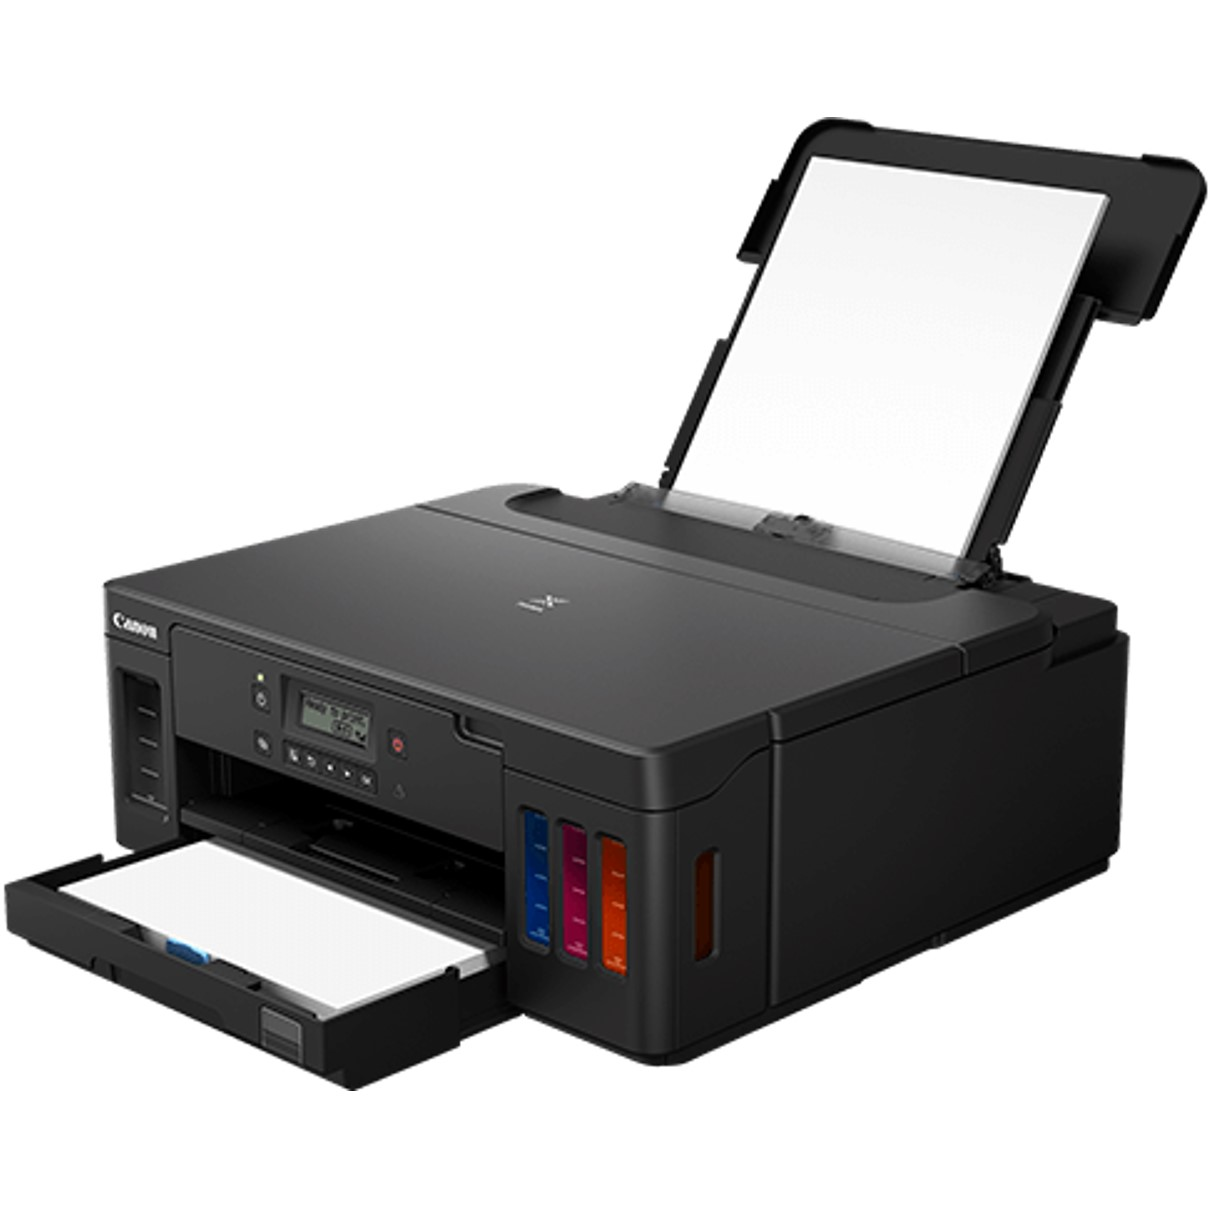 IMPRESORA CANON G5050 INYECCION COLOR PIXMA A4/ 13PPM/ 4800PPP/ USB/ RED/ WIFI/ LCD/ DUPLEX